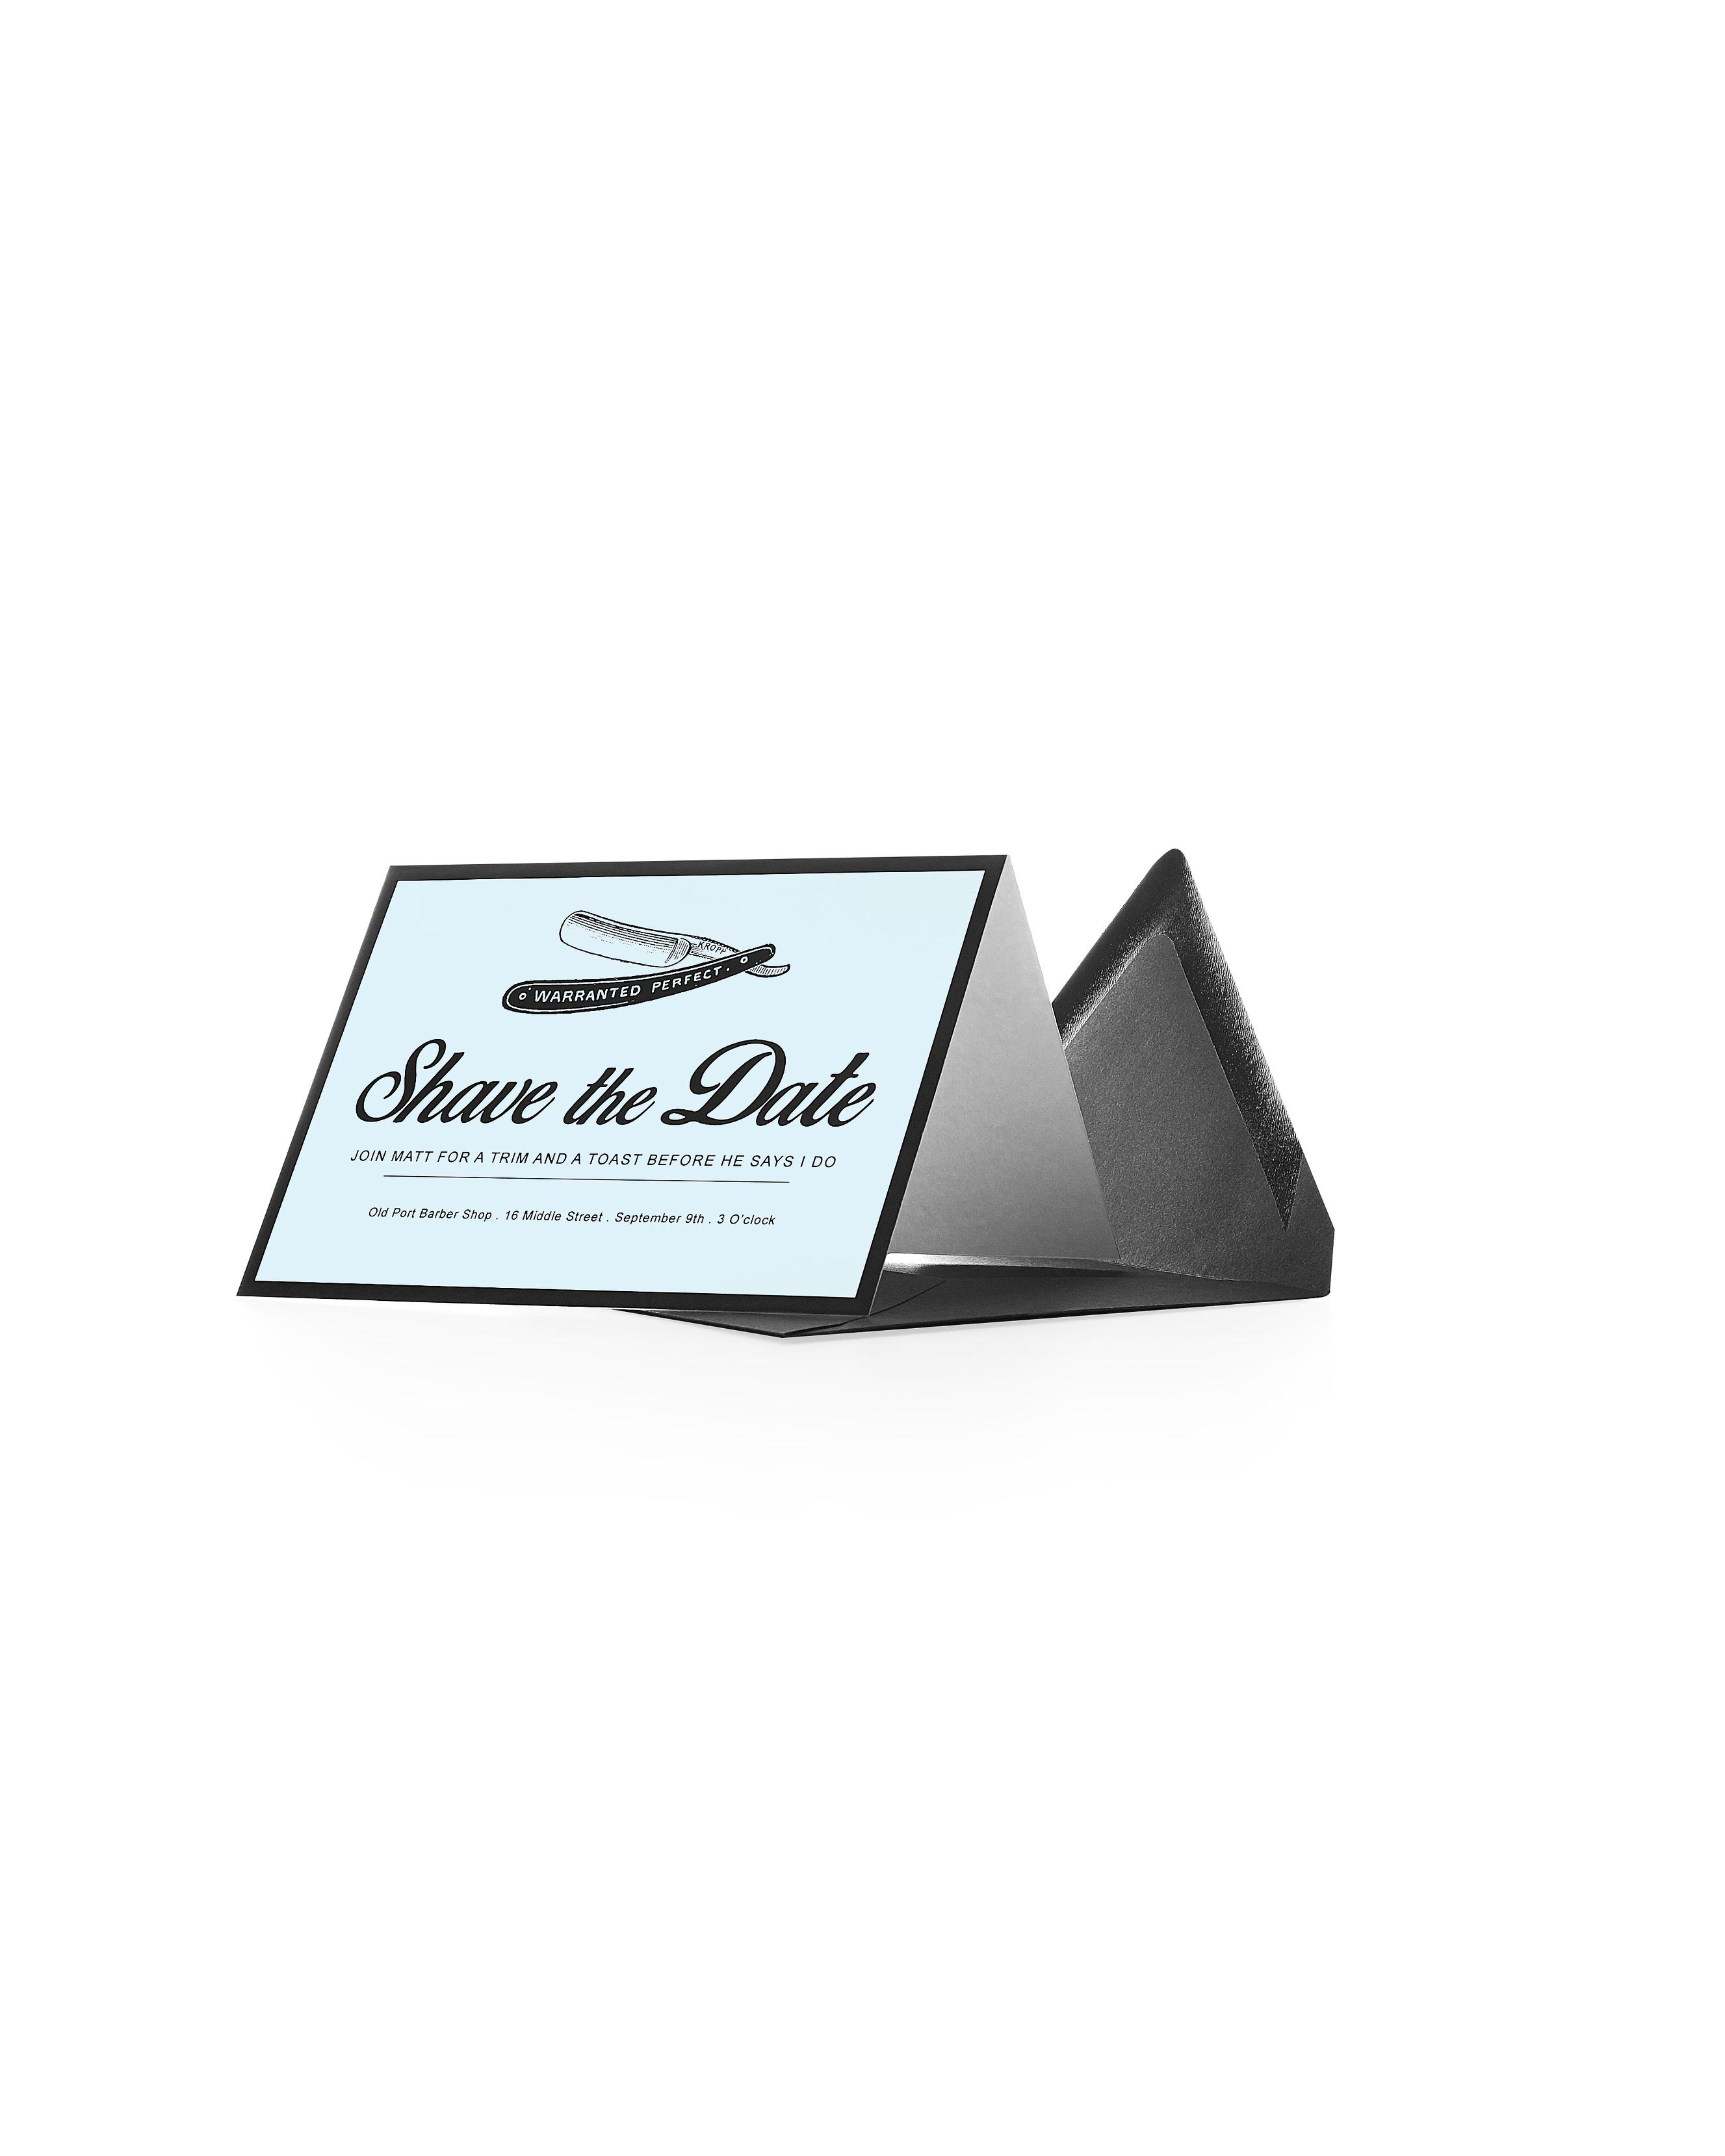 msave-the-date-cards-shave-the-date-159-d112317.jpg